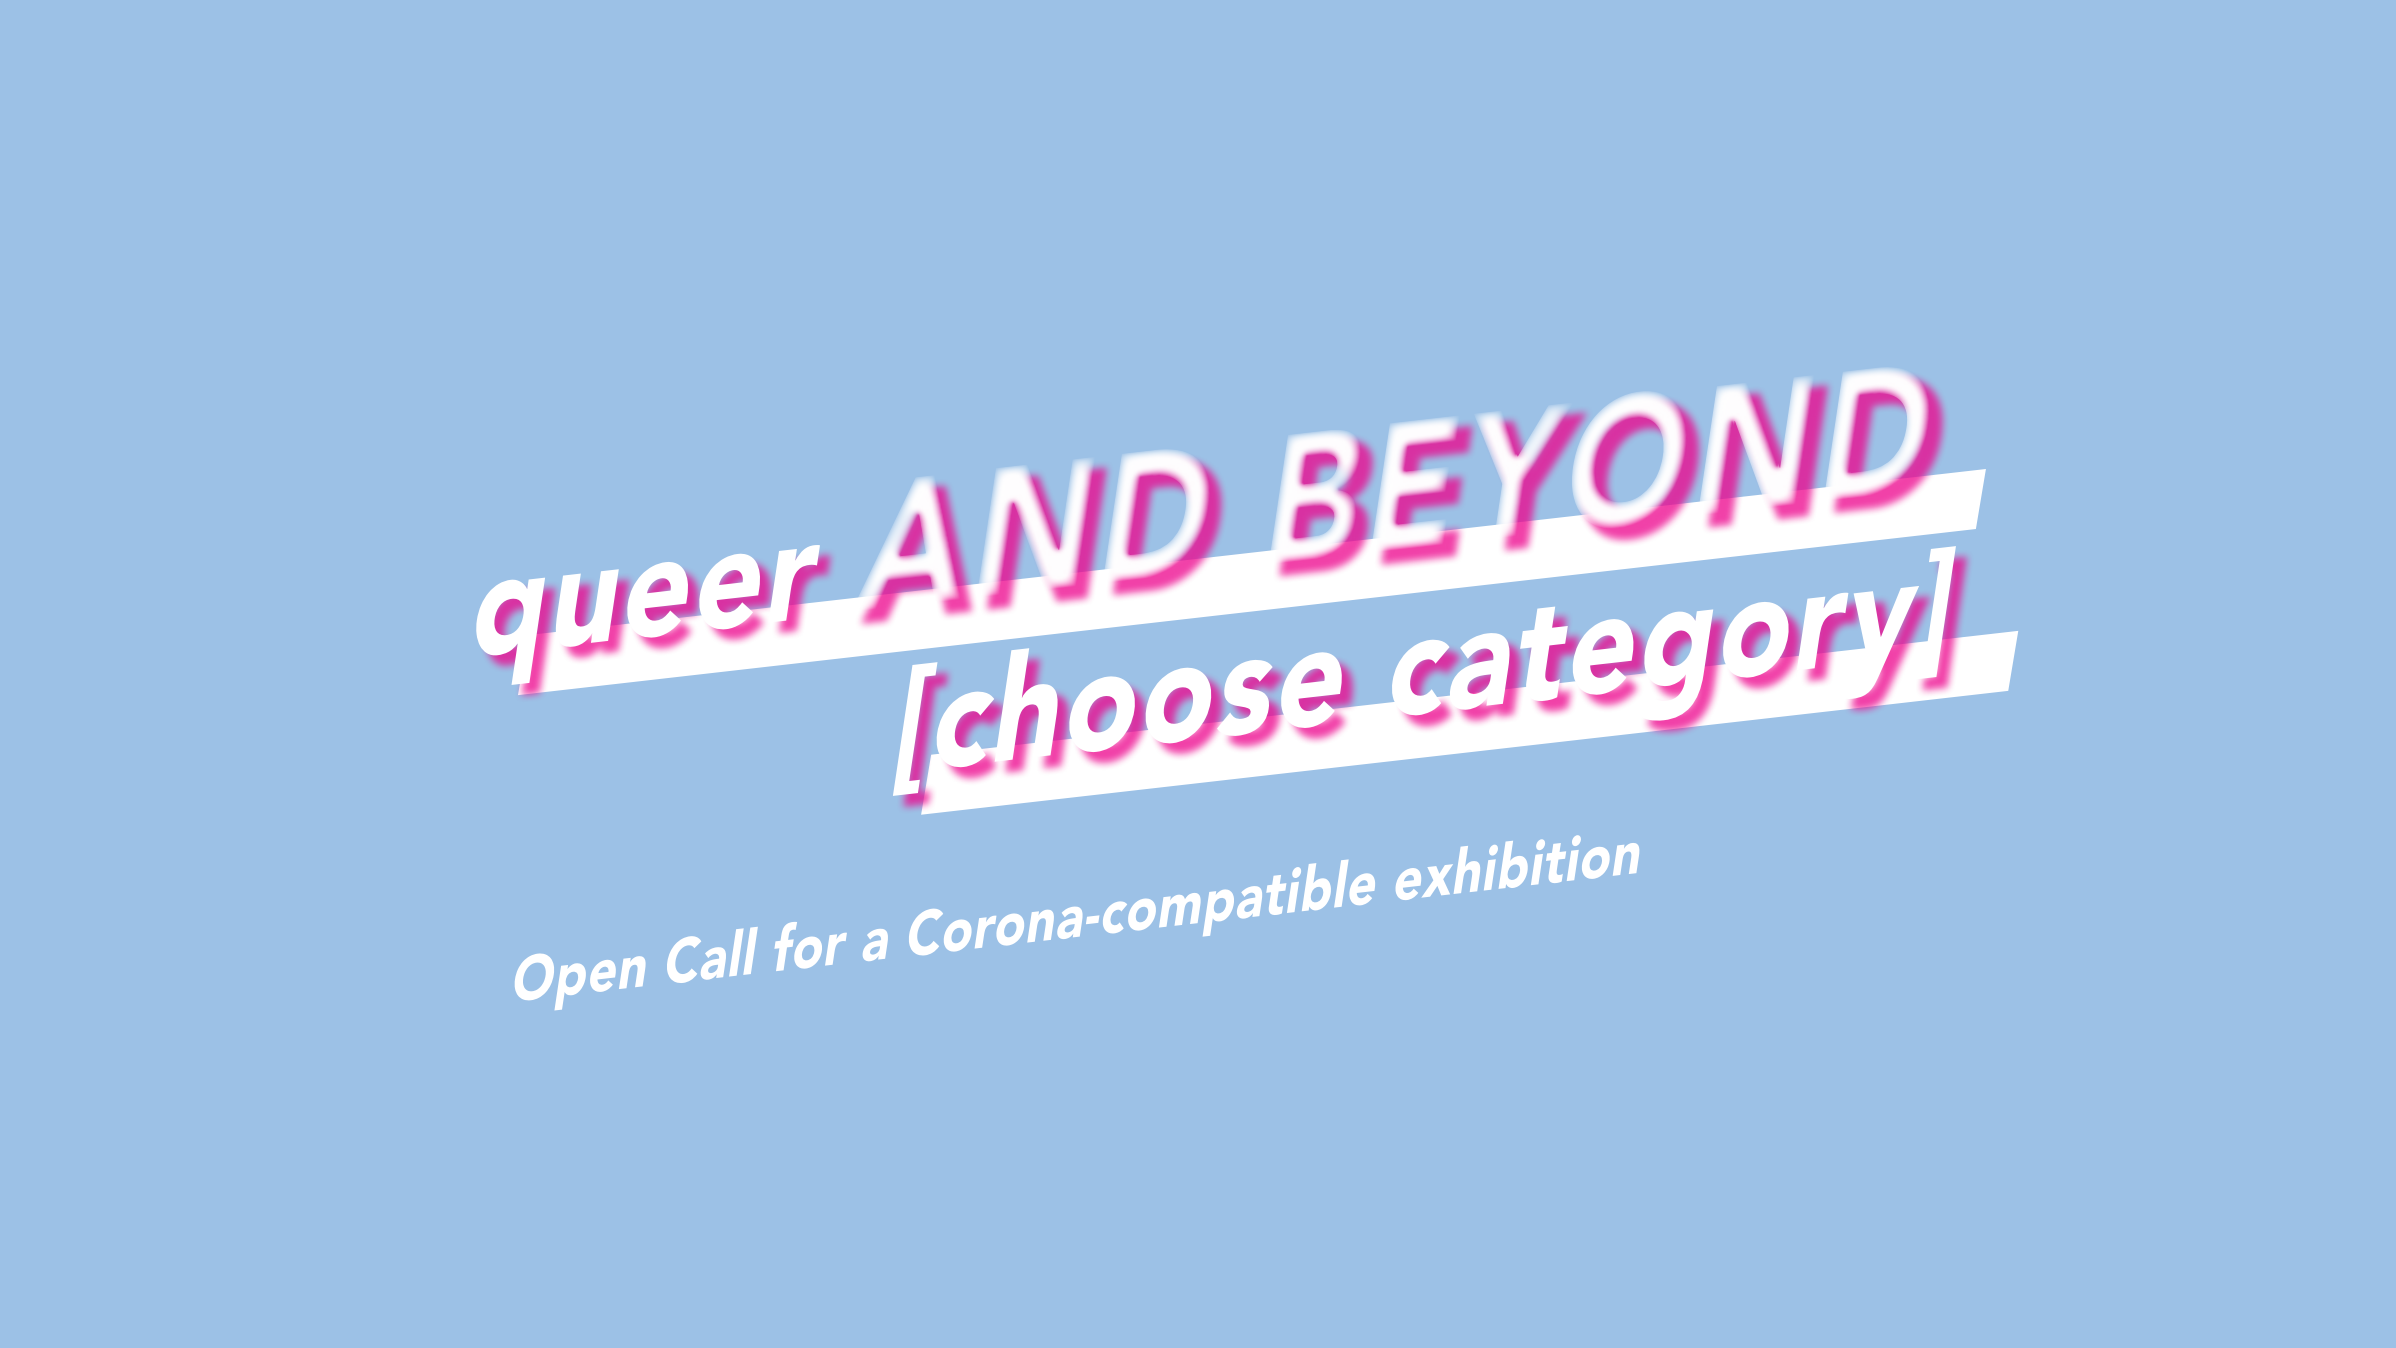 Queer and Beyond [choose category]